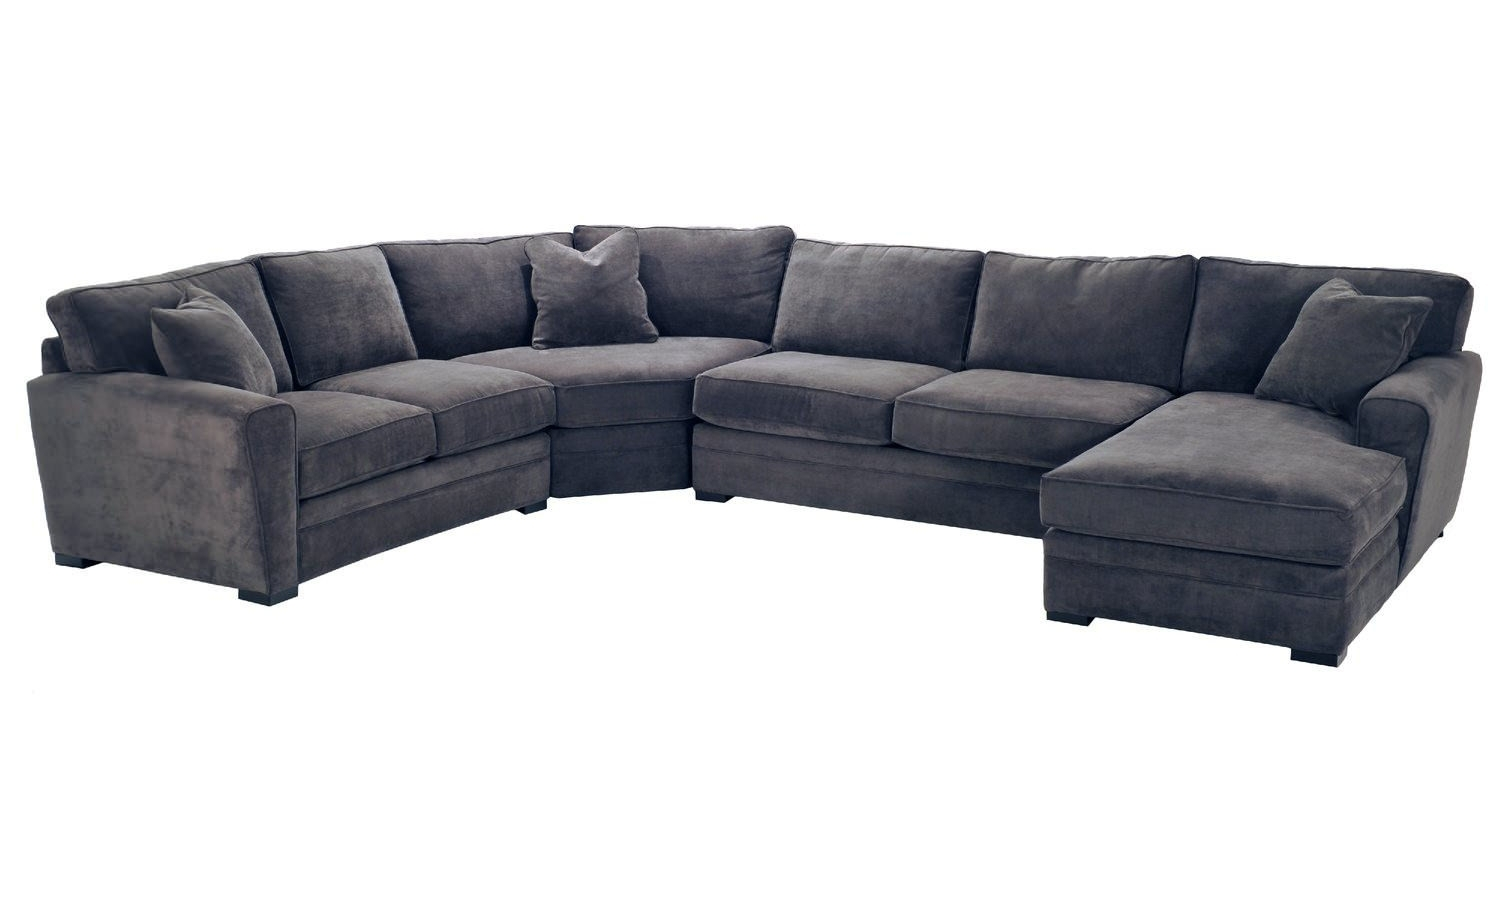 Hom Furniture St Cloud Mn With St Cloud Mn Sectional Sofas (View 5 of 10)